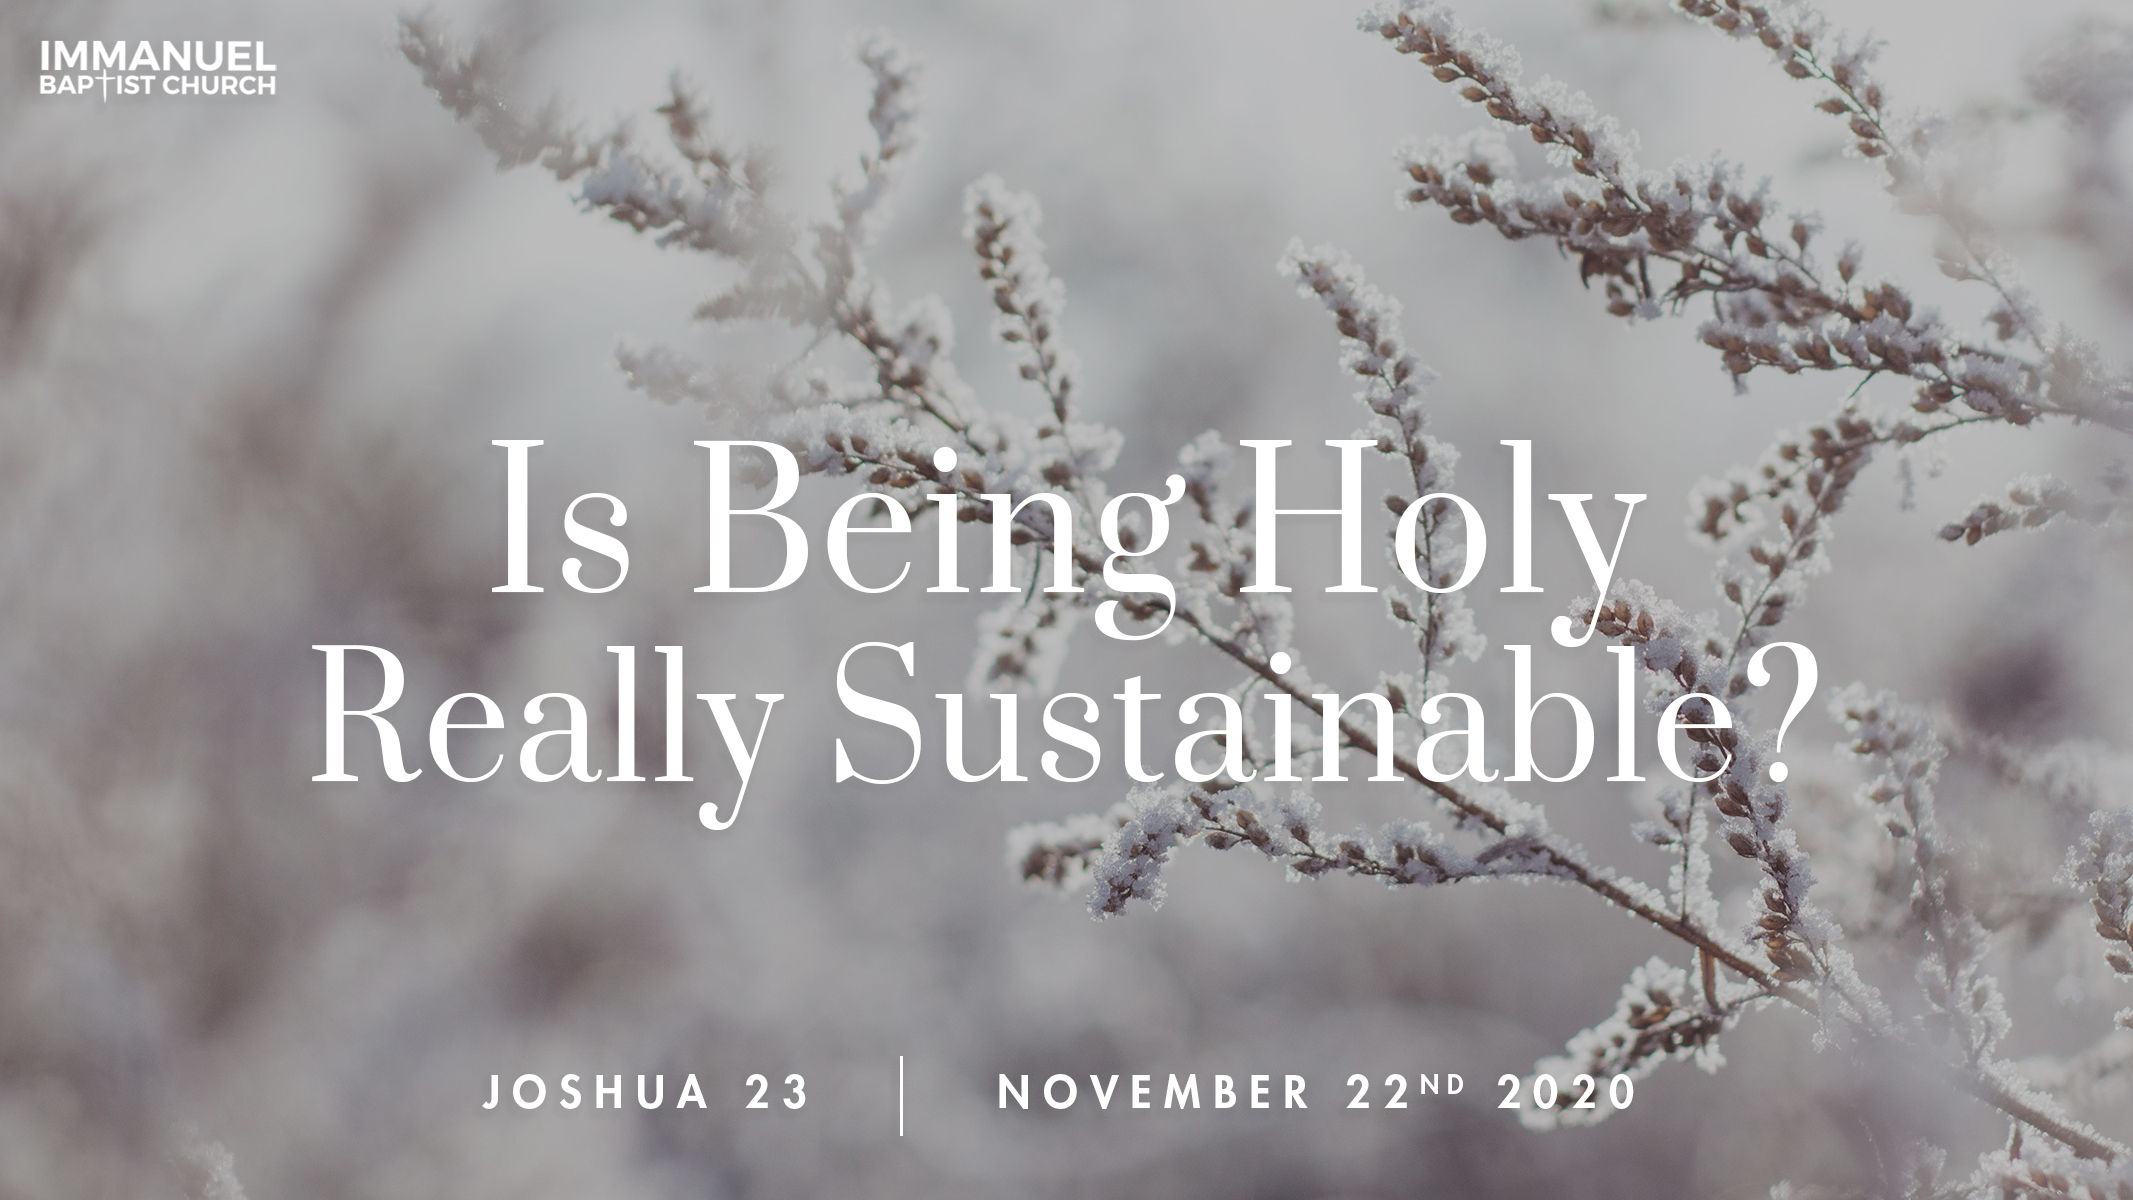 Is Being Holy Really Sustainable? Image